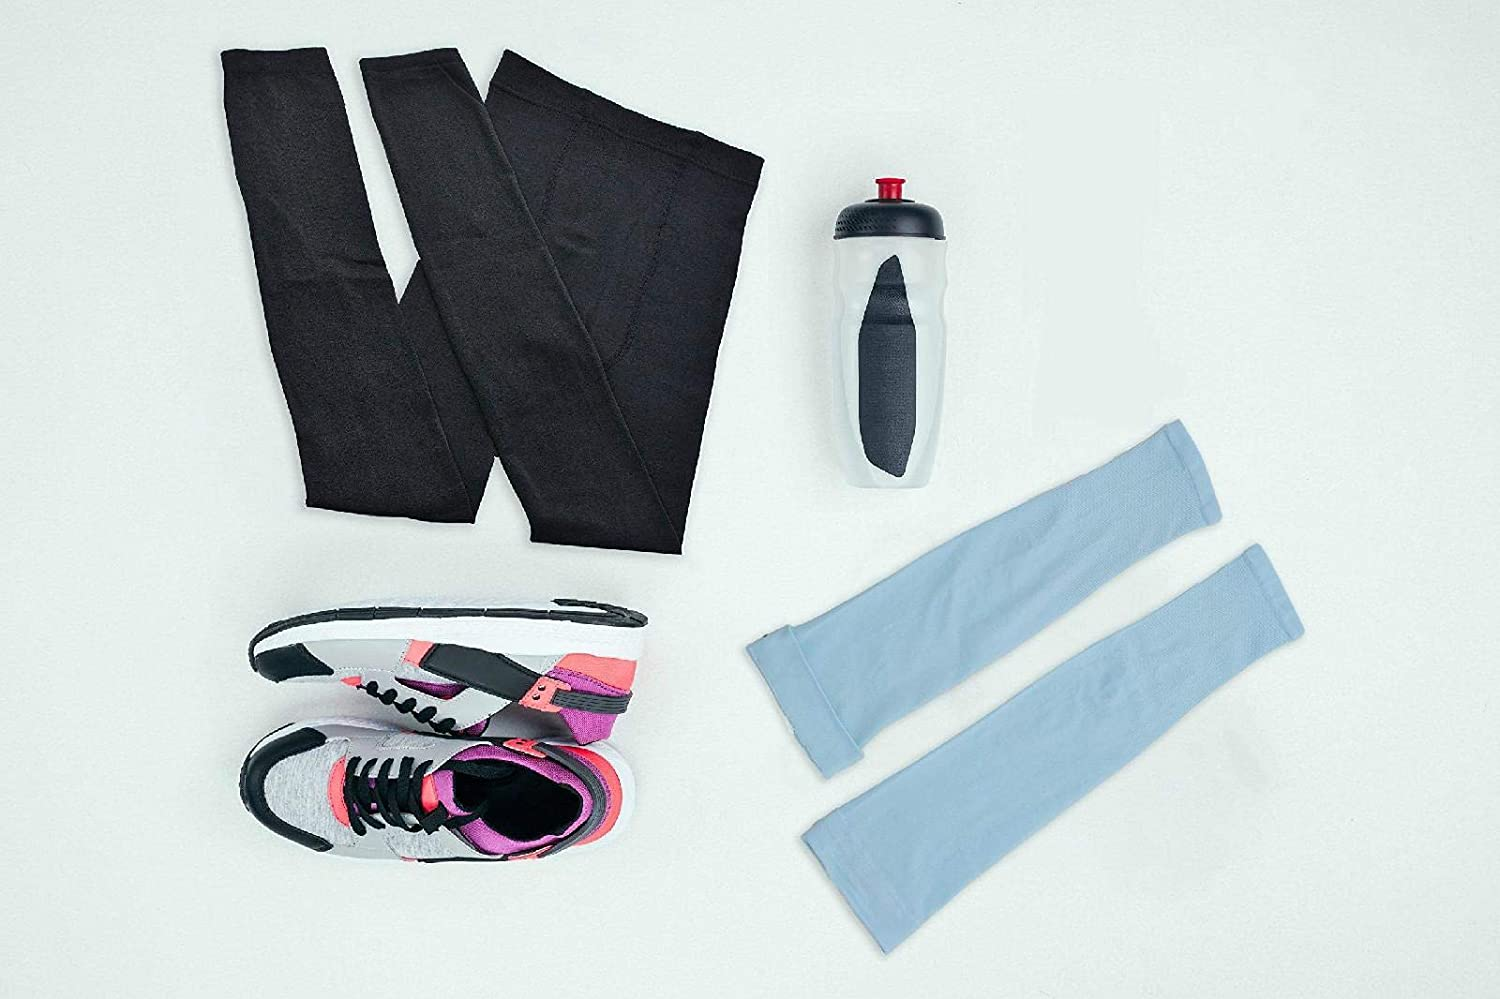 Huojingli UV Protection Cooling Arm Sleeves UPF 50 Compression Sun Sleeves for Men